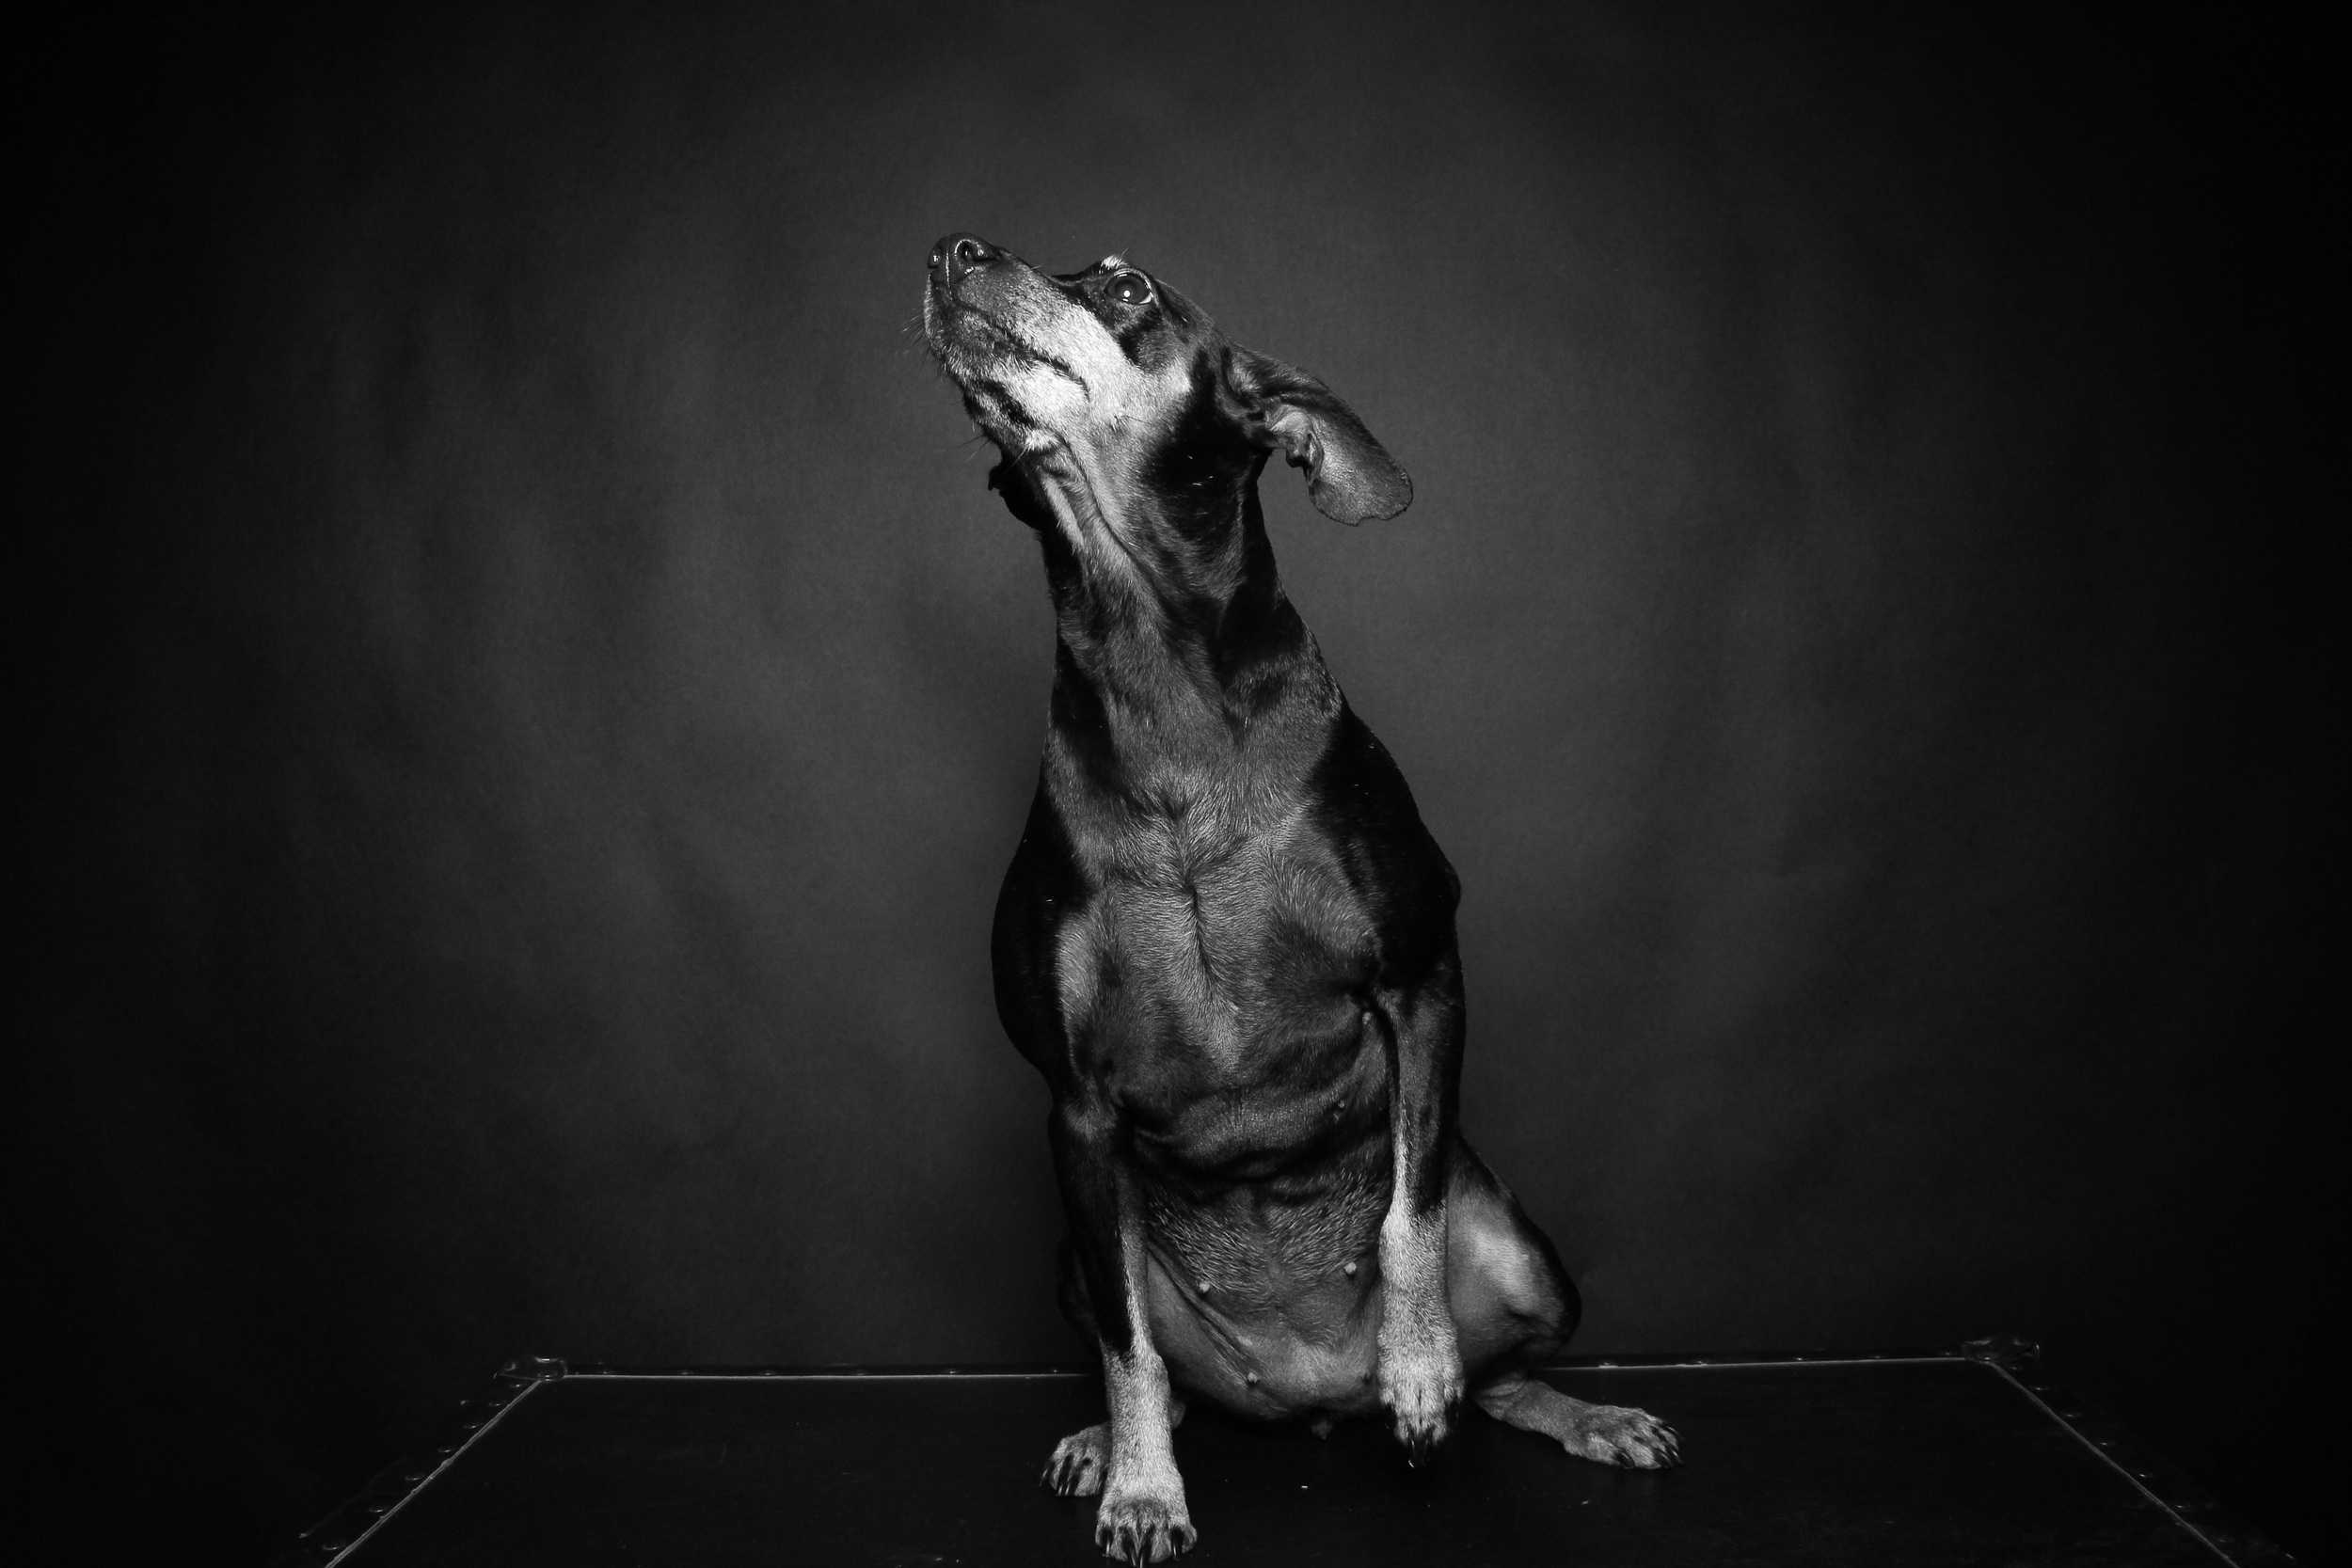 Portrait of a Manchester Terrier.